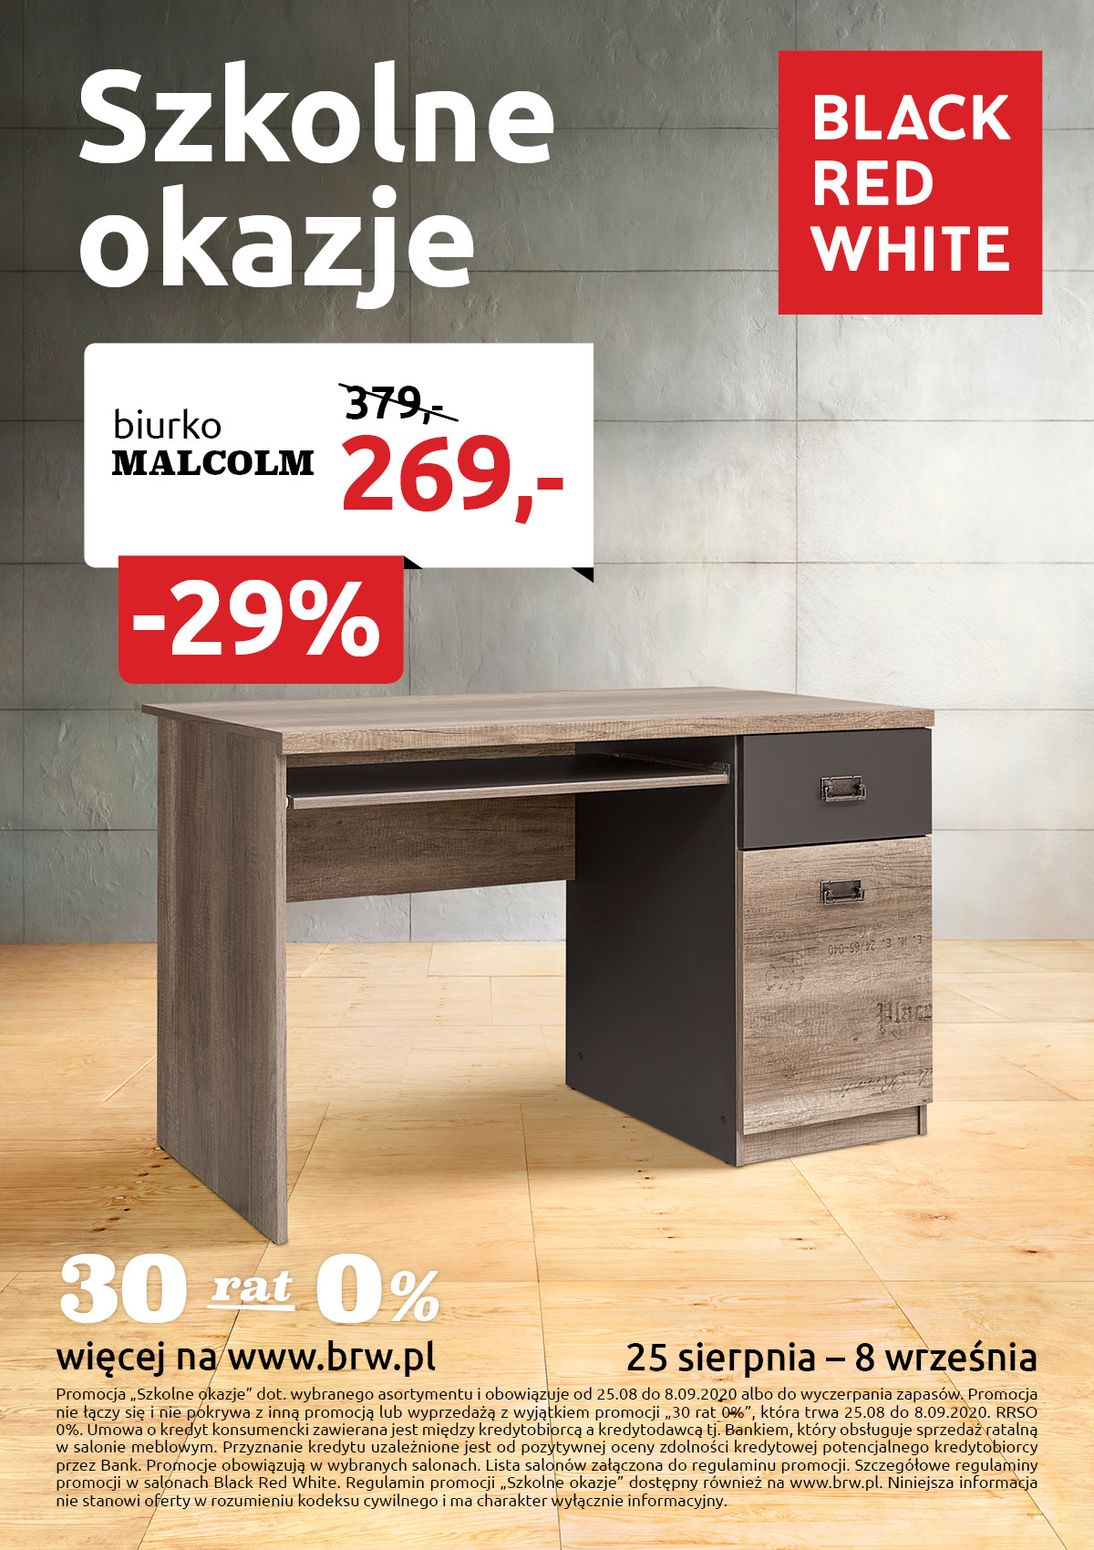 Gazetka Black Red White od 25.08.2020 do 08.09.2020